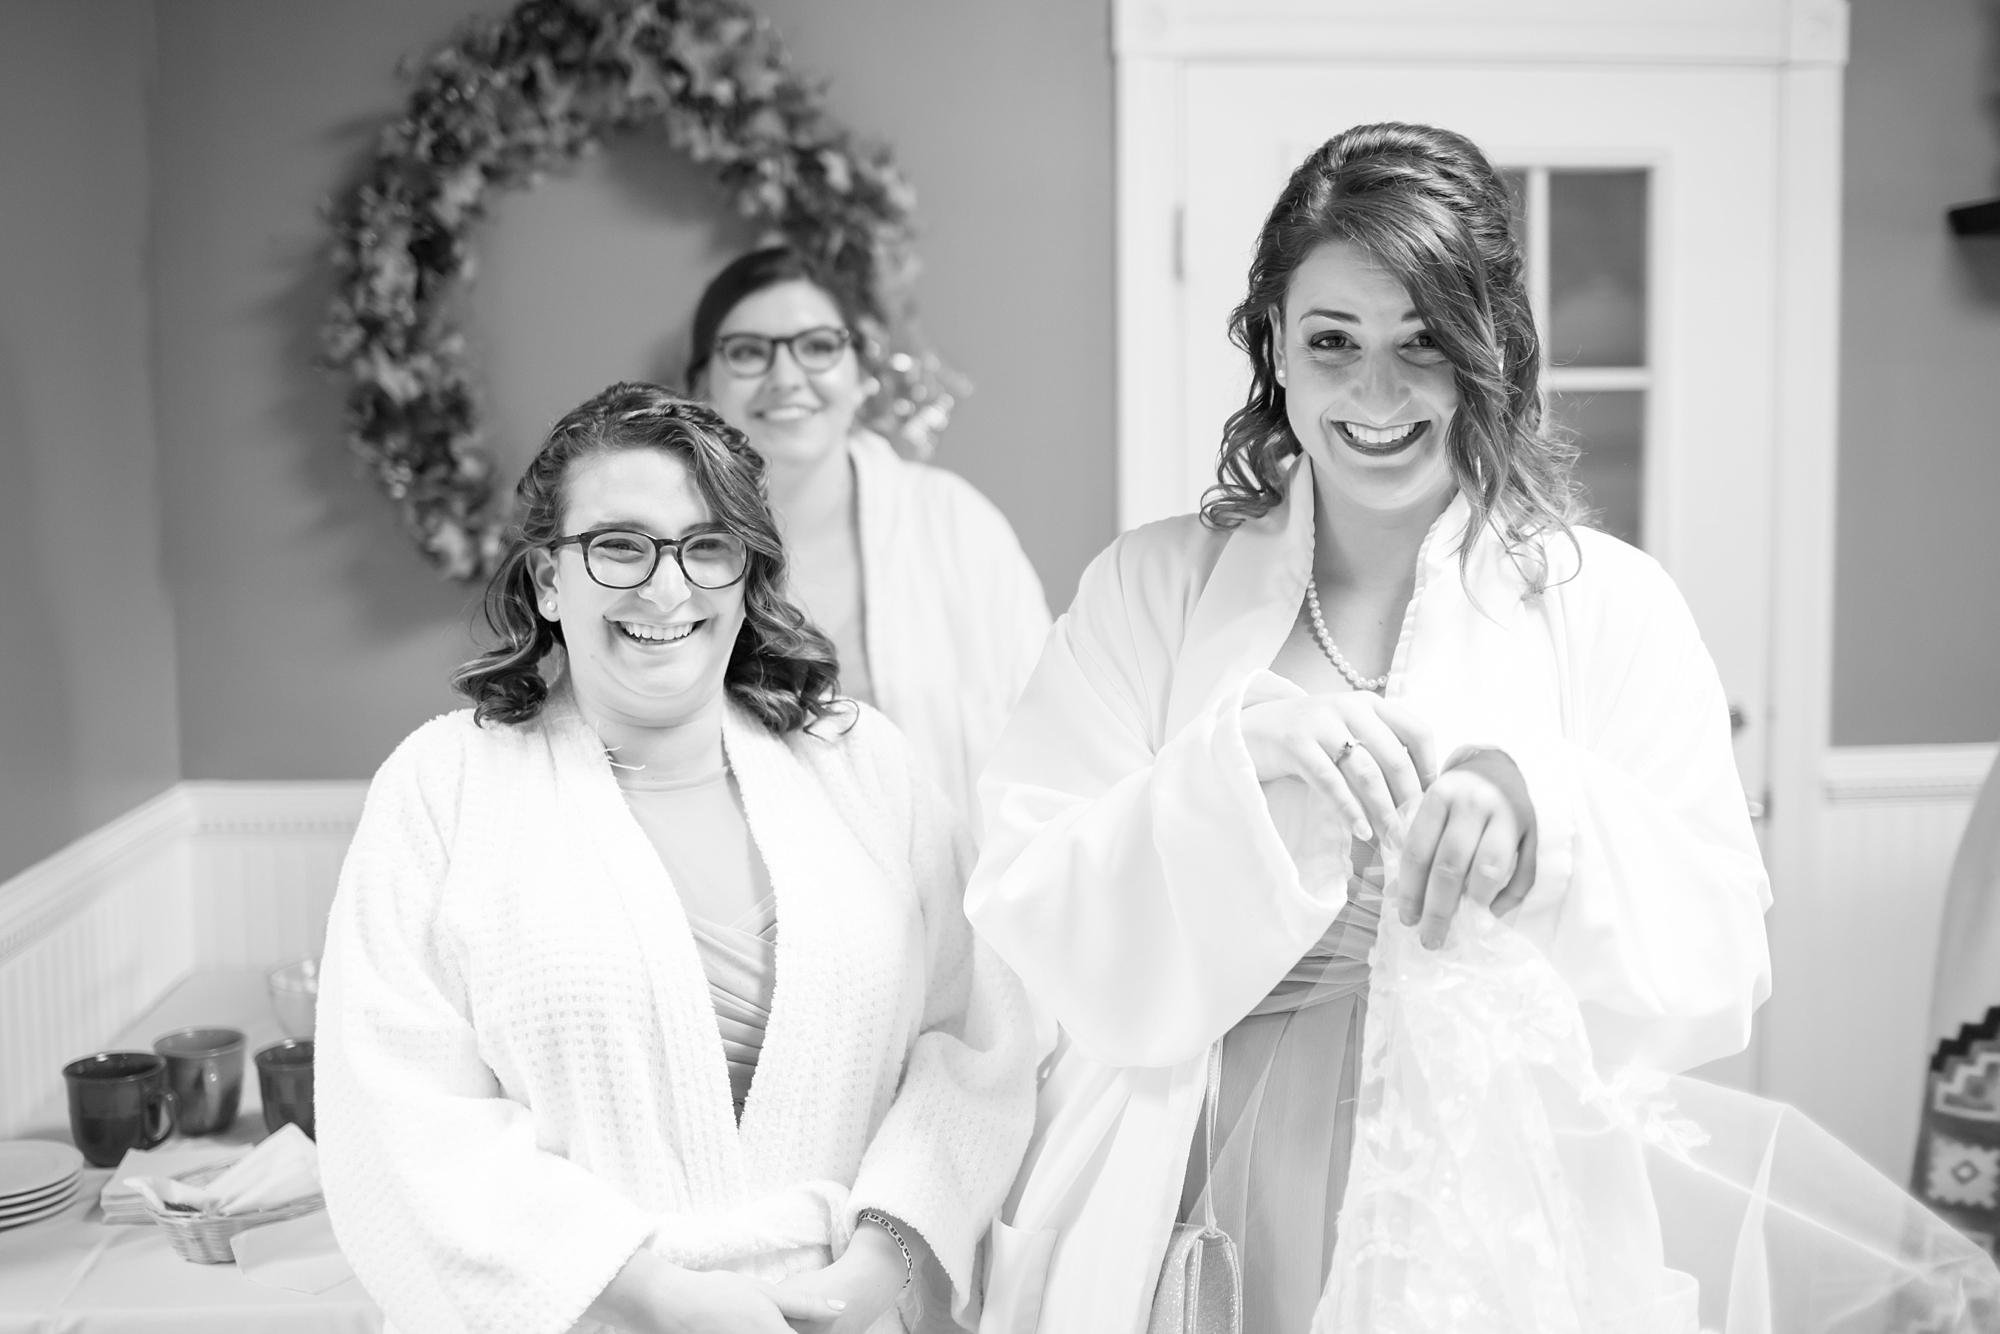 The girls were preparing for the windchill by wearing the robes overtop of their dresses!